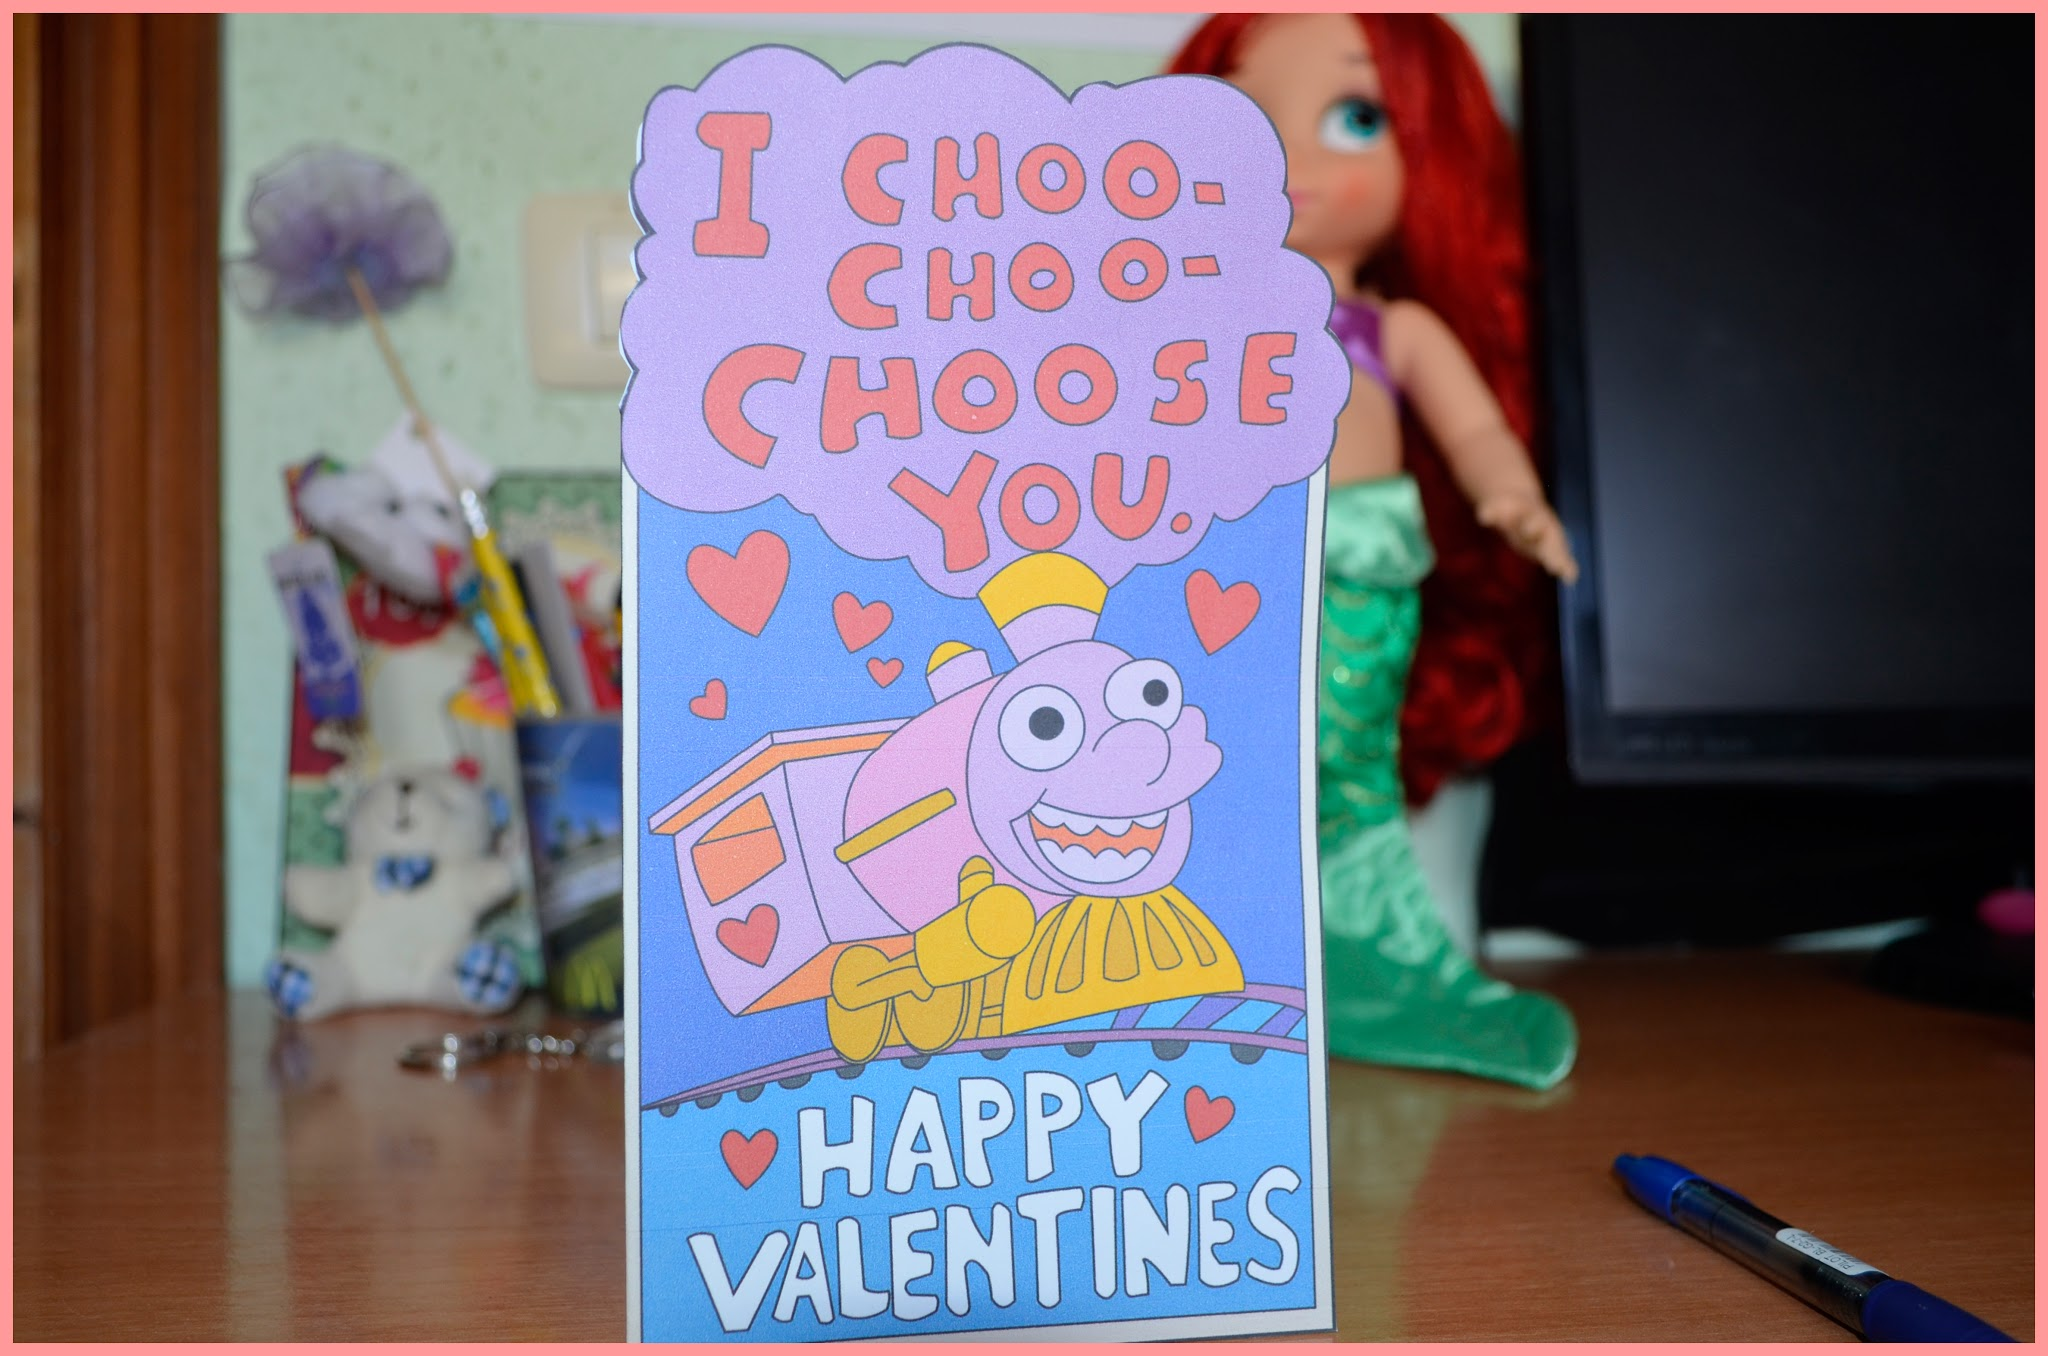 I choo choo choose you - Tarjeta